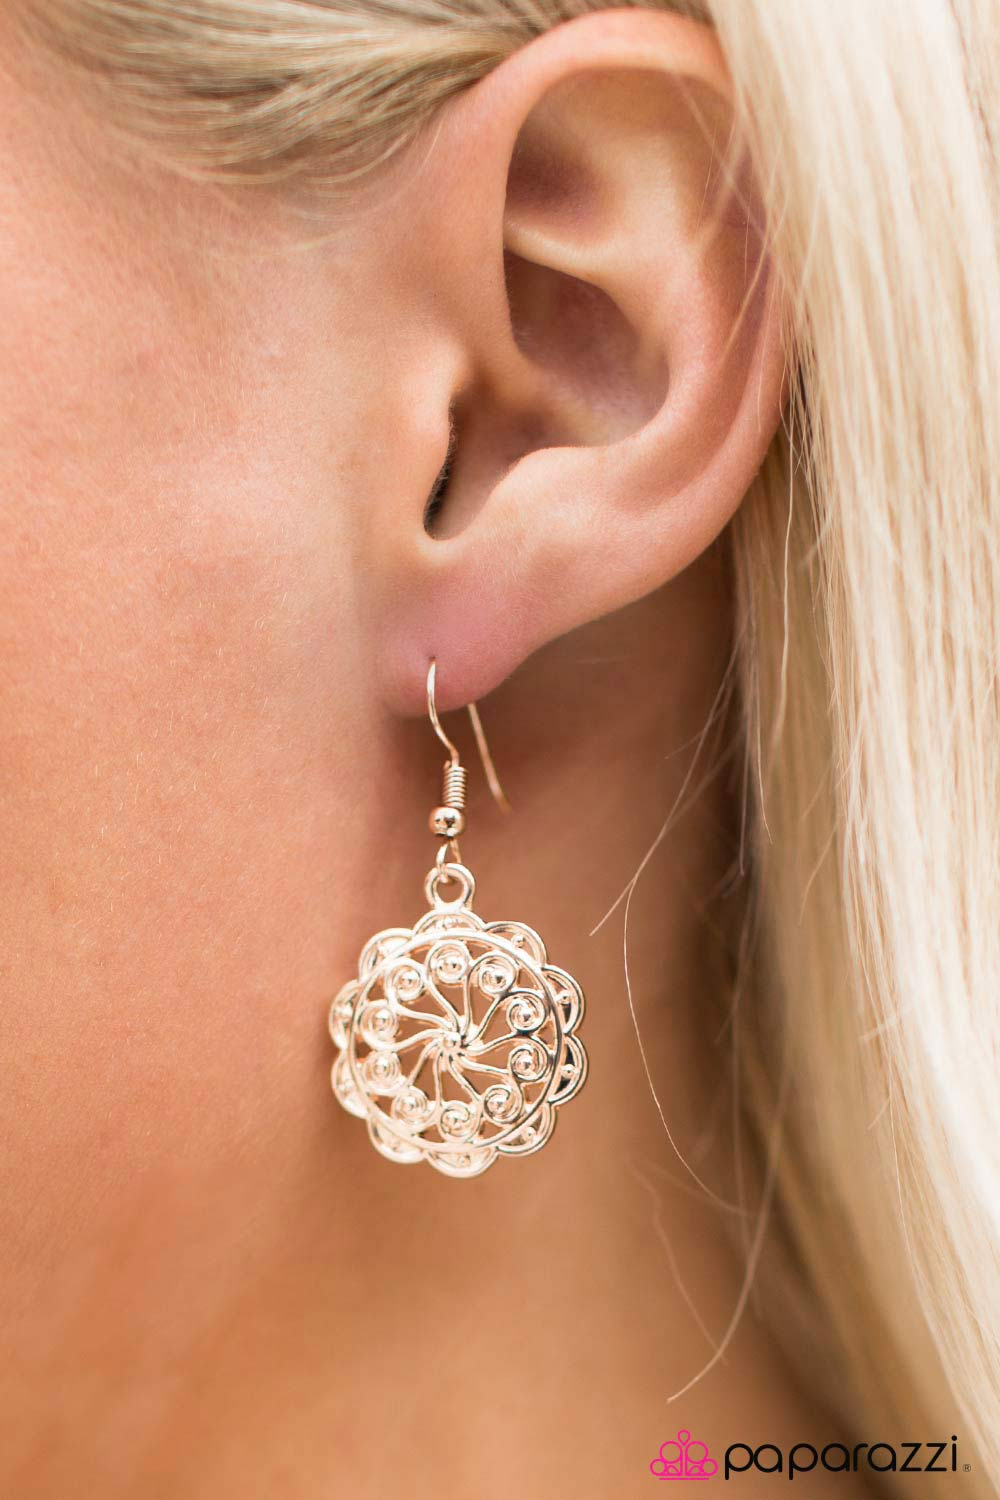 Get It Girl - Paparazzi earrings